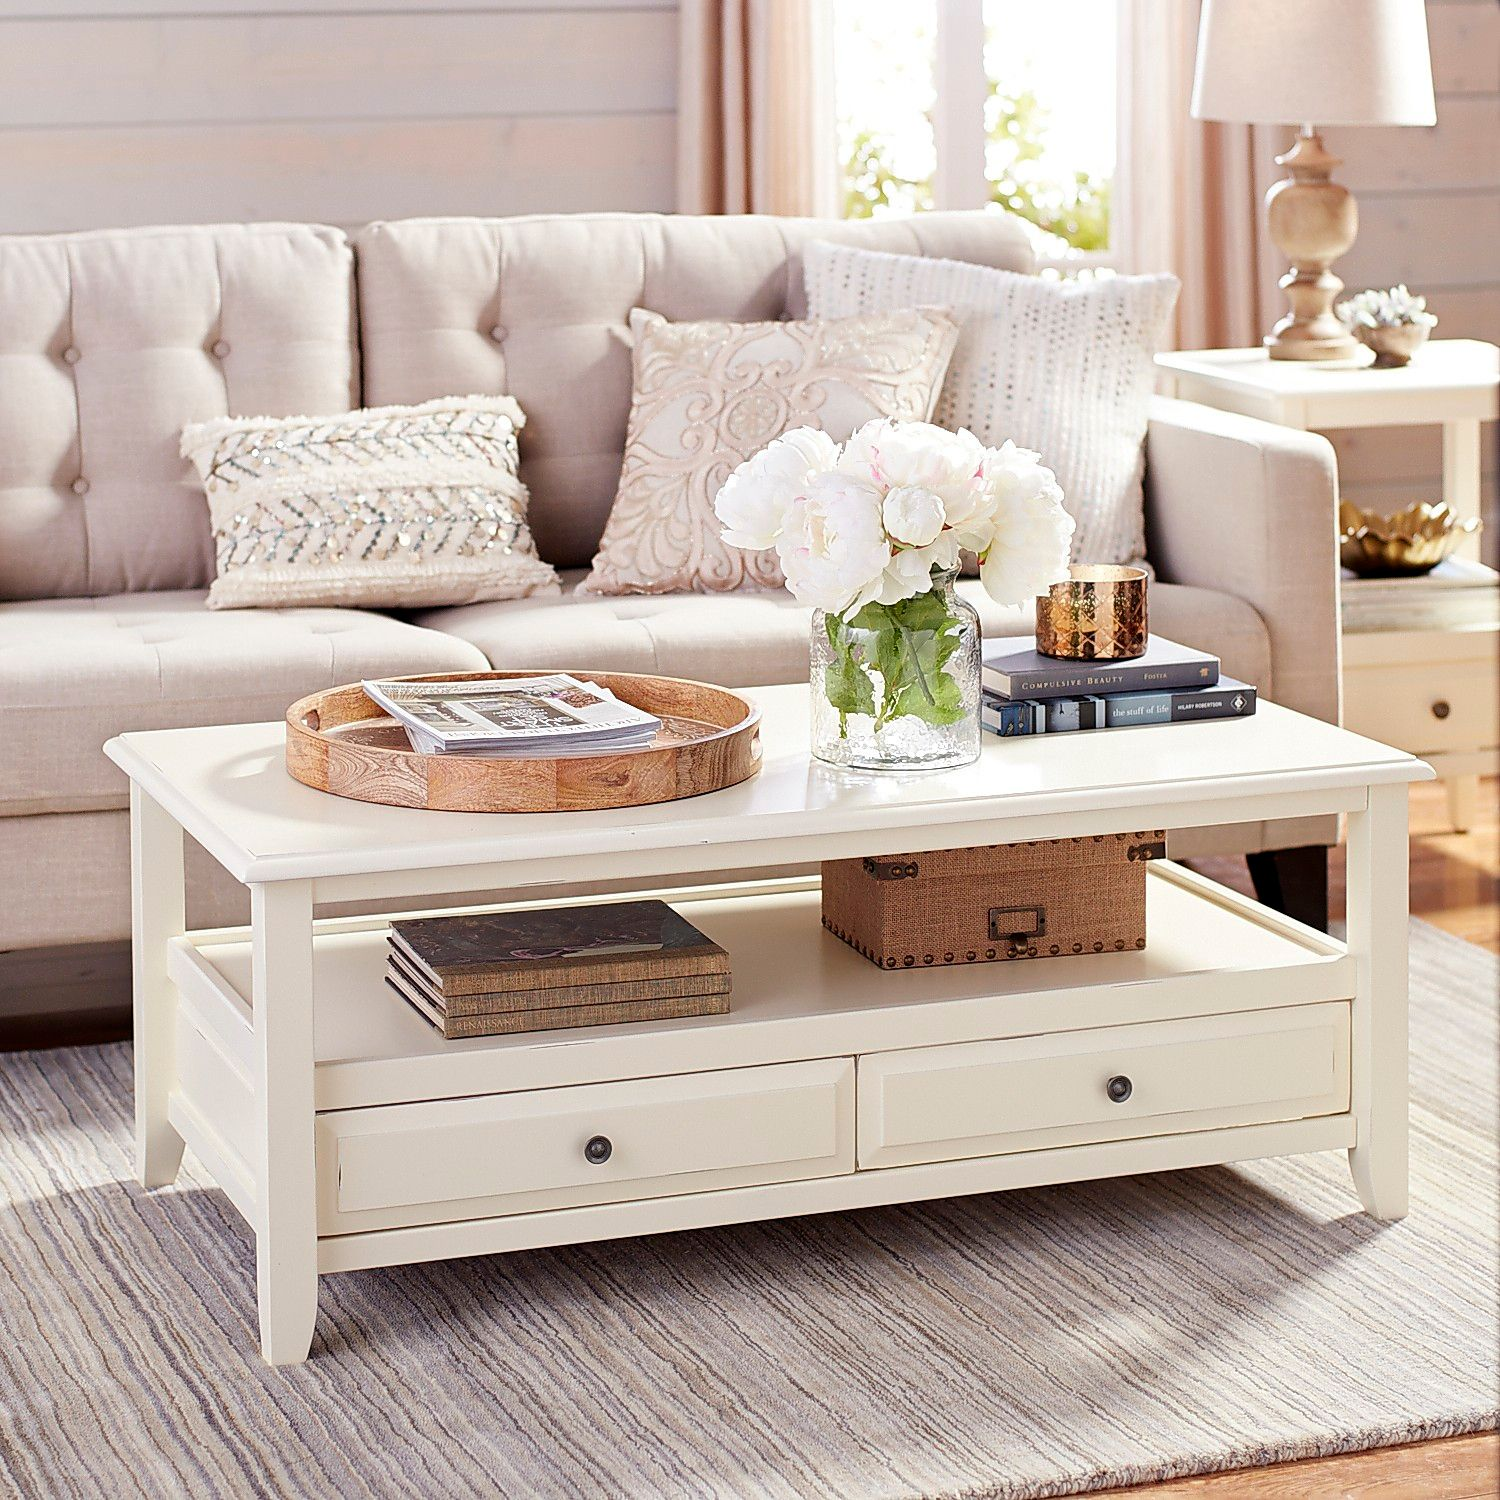 anywhere antique white coffee table with knobs pier imports one accent drop side bella green mosaic outdoor small end tables target metal patio crystal lamps bean shaped wicker